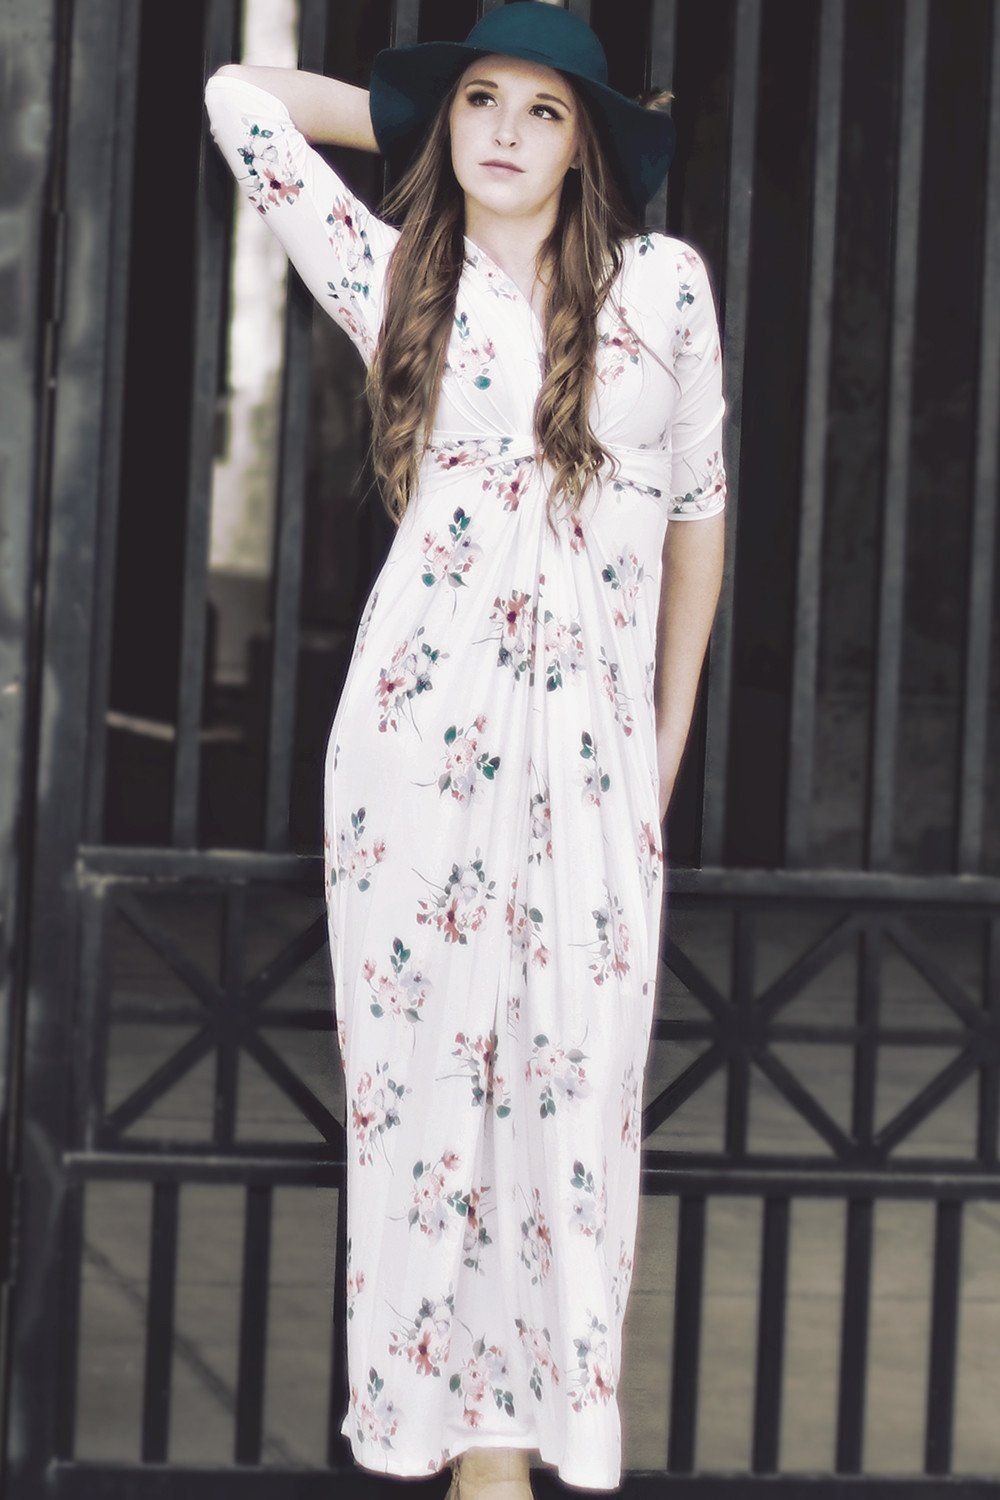 This White Floral Maxi Dress is an elegant classy on trend look. This maxi dress features an all over floral print, 3/4 sleeves, a slip lining underneath and accented with a front tie gathering. We wo